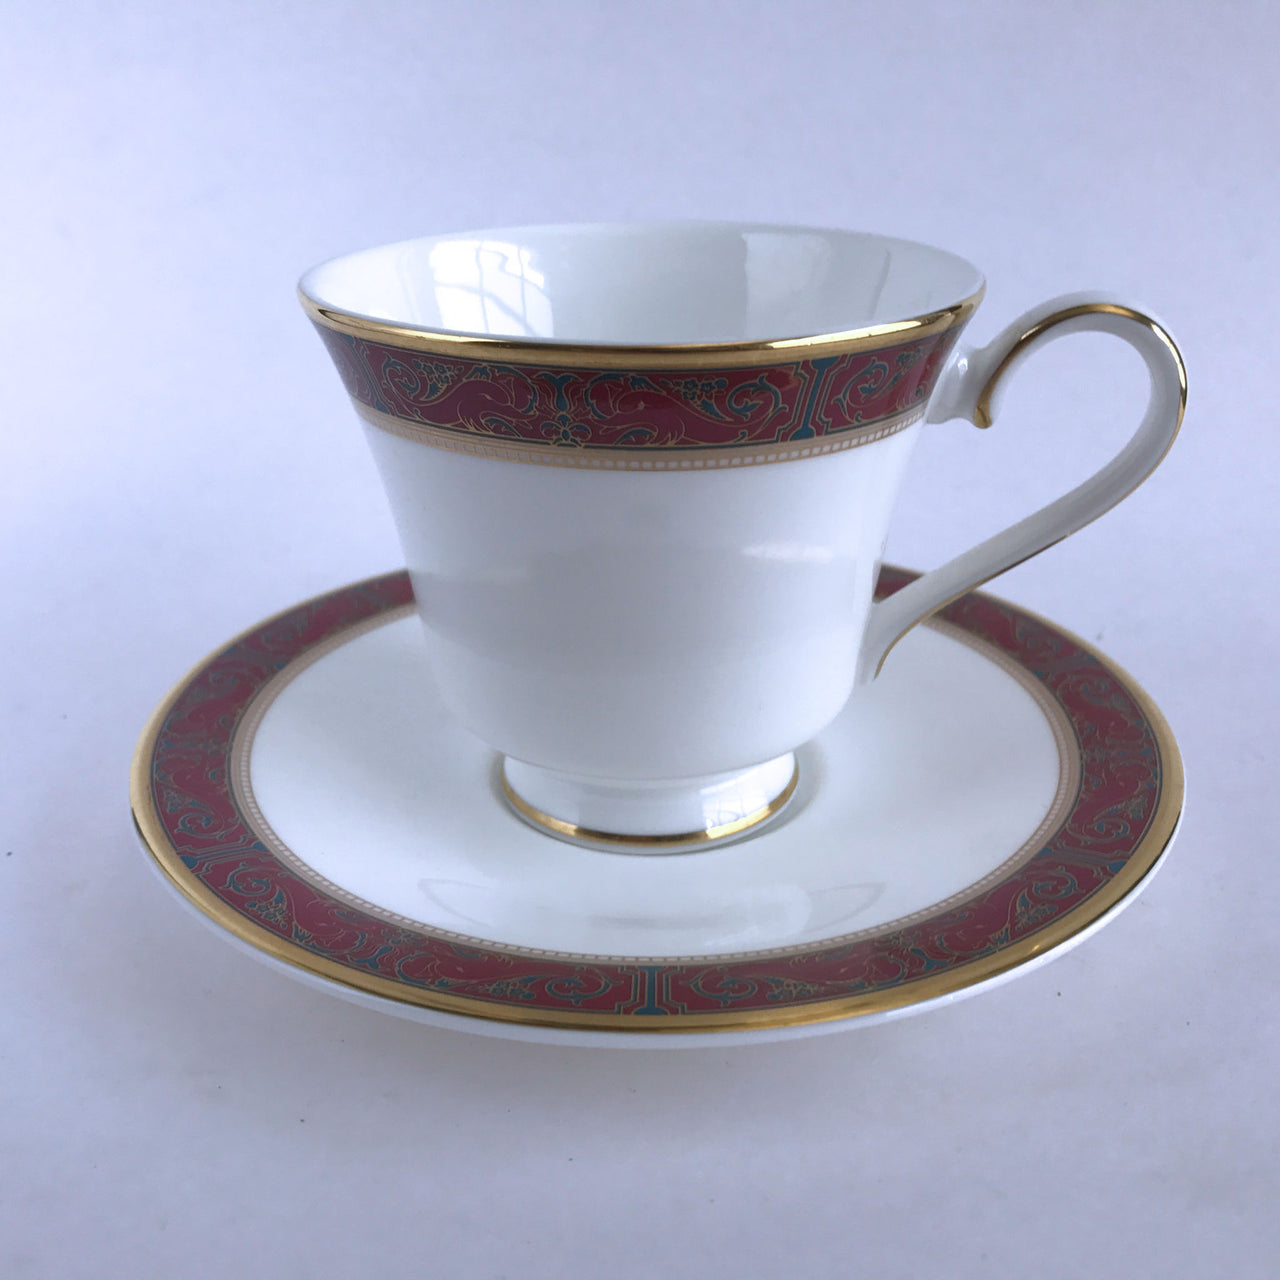 Royal Doulton Martinique Footed Cup and Saucer Maroon Teal Gold Trim